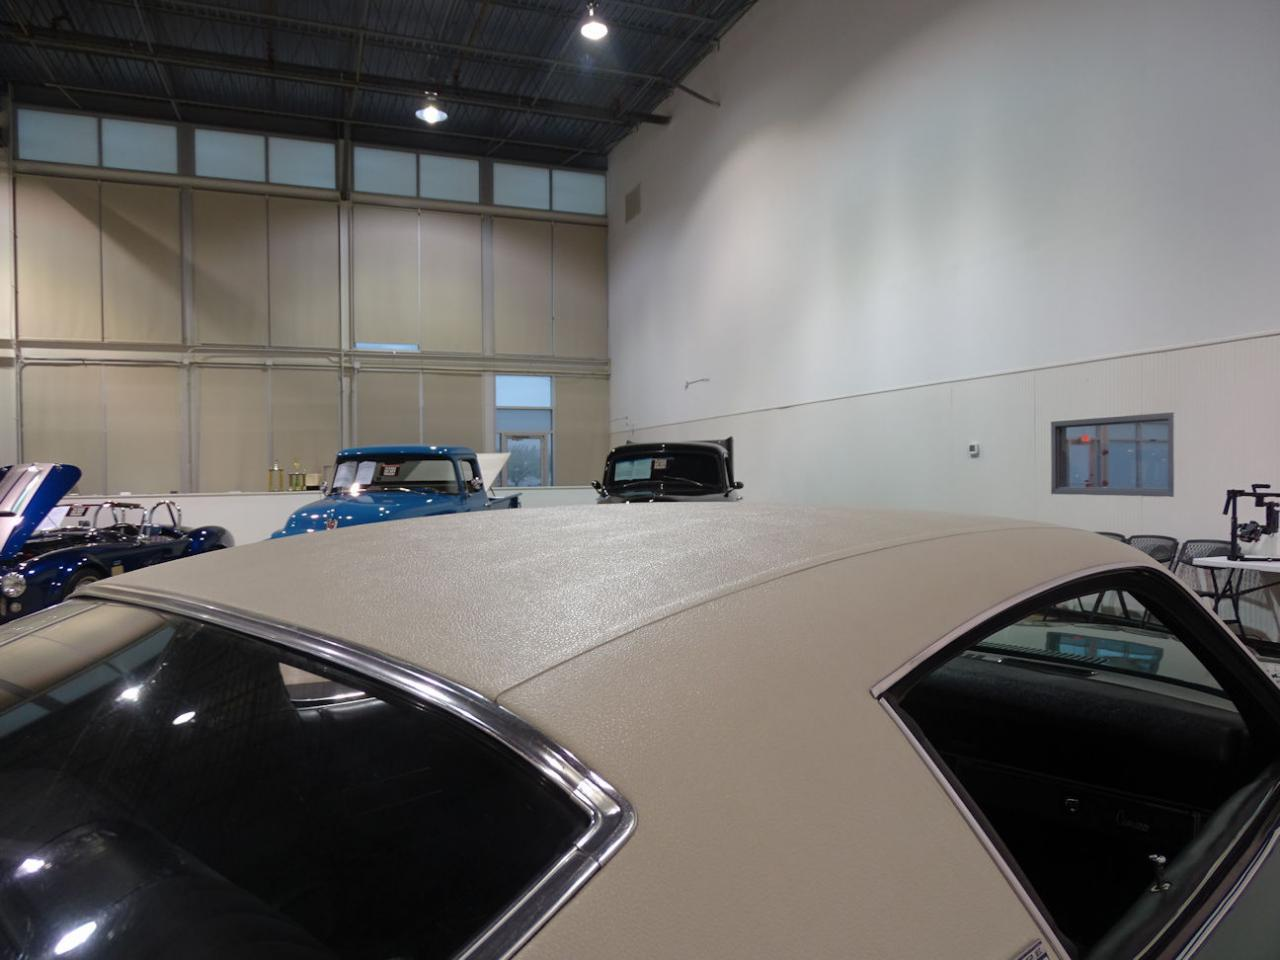 Large Picture of Classic '73 Camaro located in Indiana - $25,995.00 Offered by Gateway Classic Cars - Indianapolis - NE3J